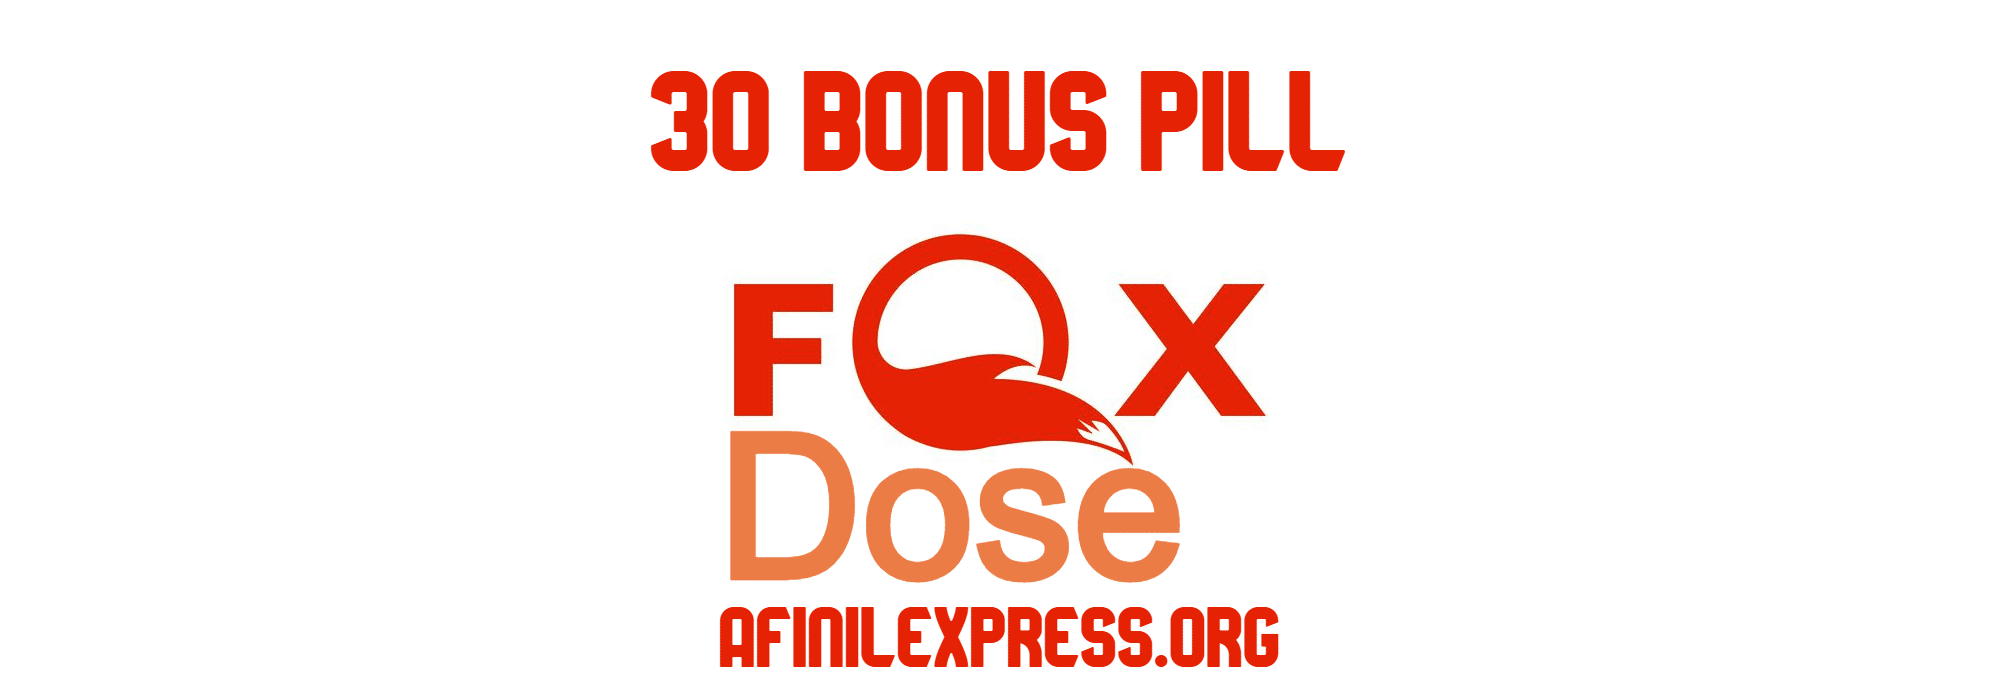 foxdose 30pill offer, afinilexpress.org